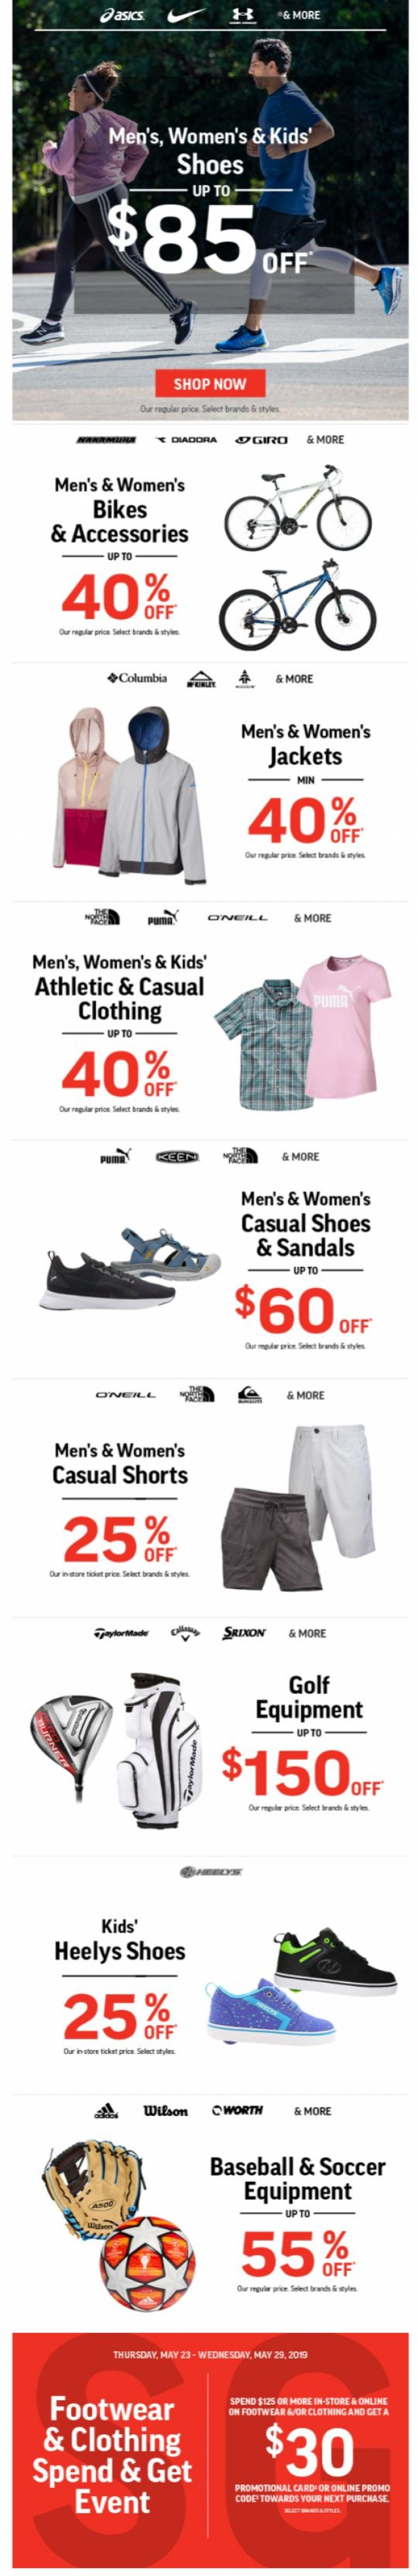 e141336c29340 May 24, 2019 - Sport Chek - Get Ready For Summer ☀ Deals On Shoes ...